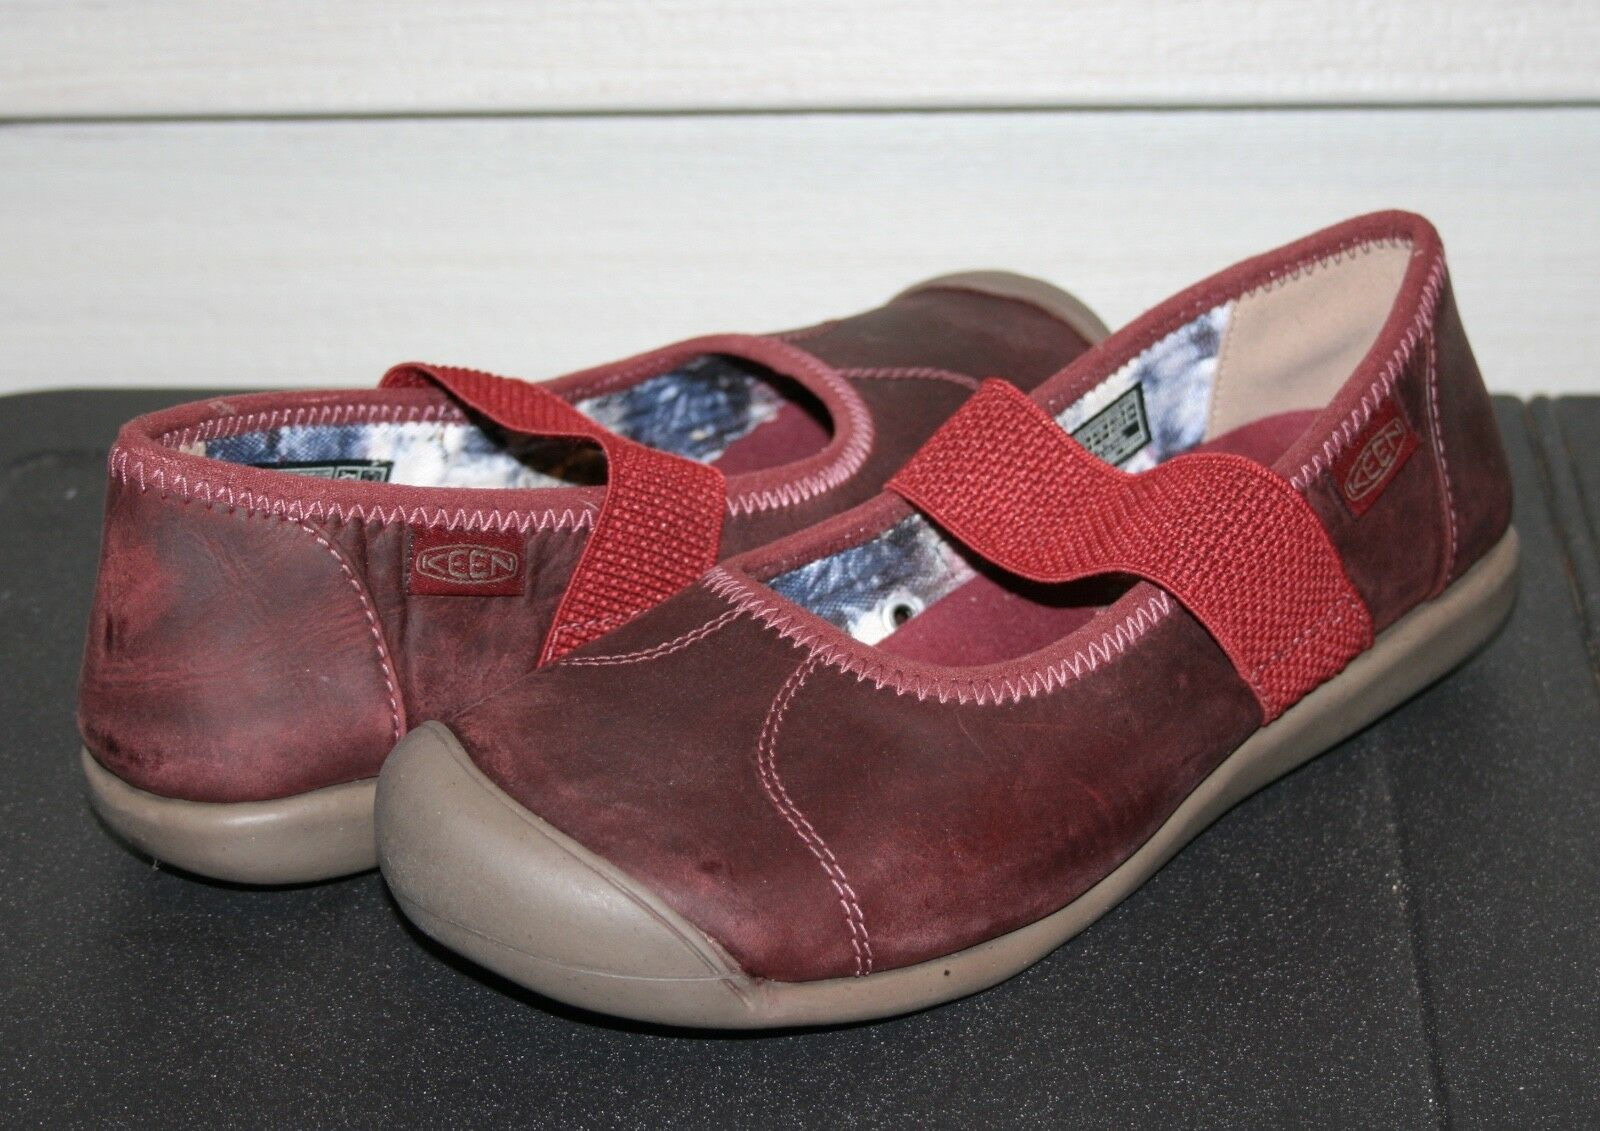 KEEN SIENNA MJ LEATHER US 7.5 EU 38 Woman's Mary Jane chaussures rouge